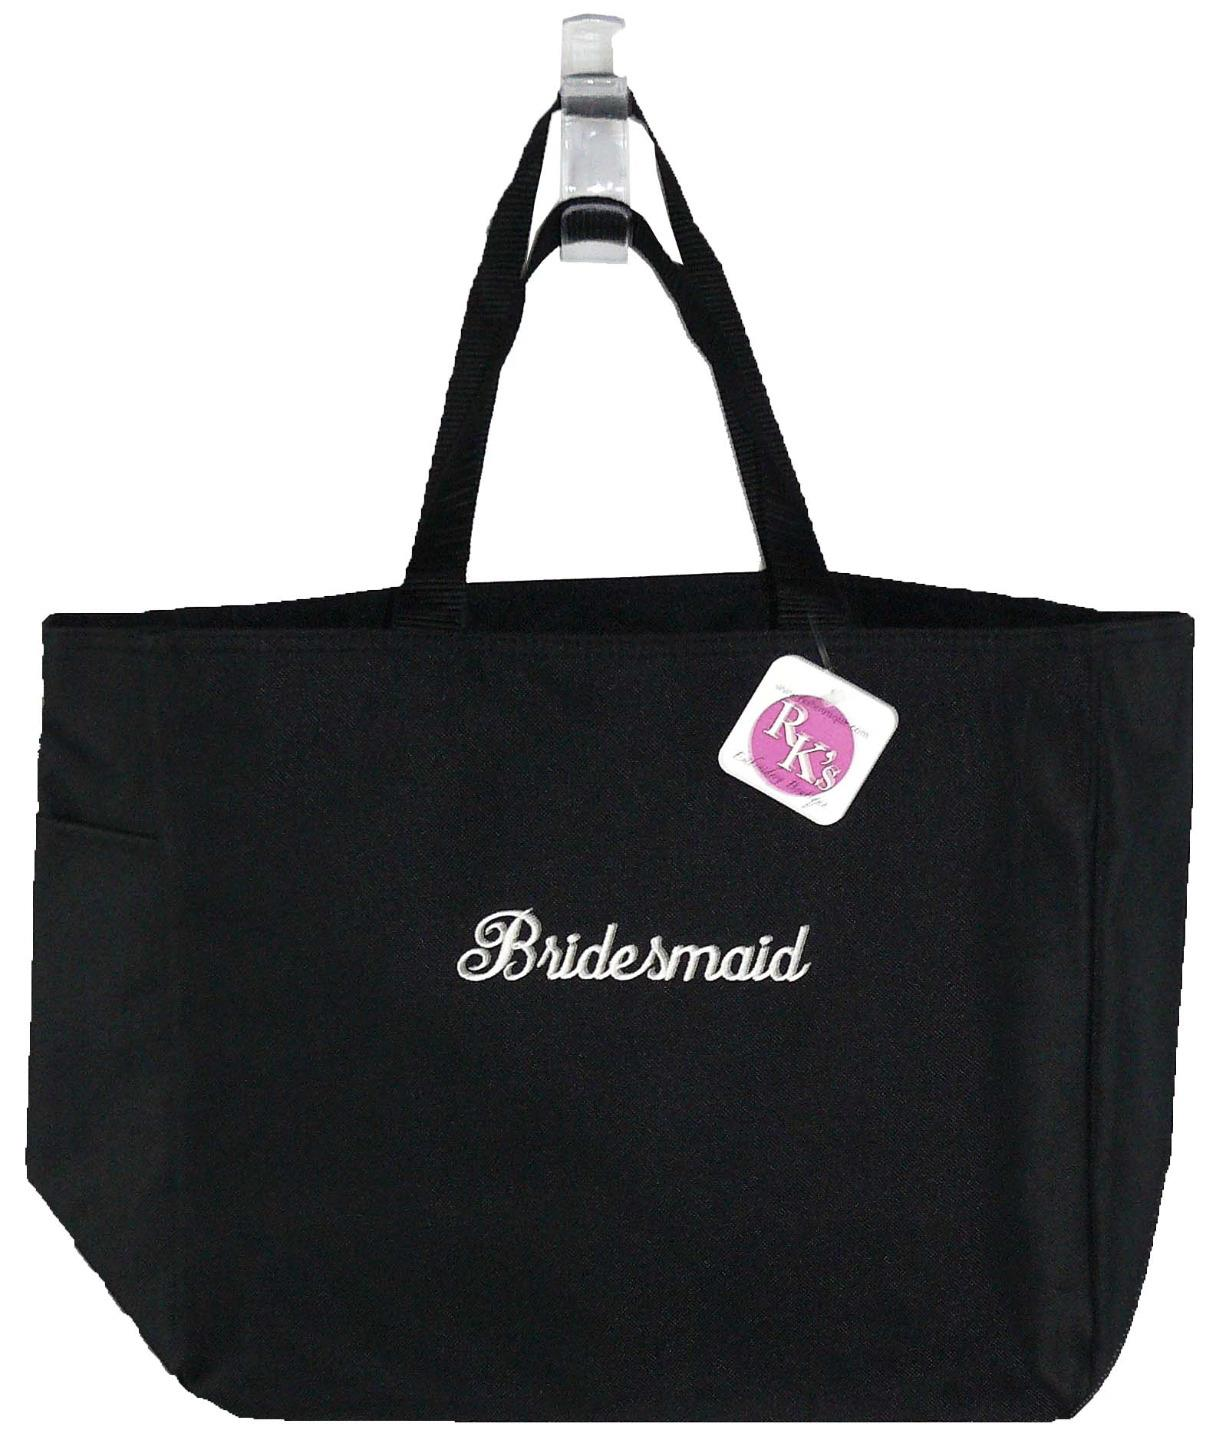 Bridesmaid Wedding Party Custom Monogram Embroidered Essential Tote Bag NWT